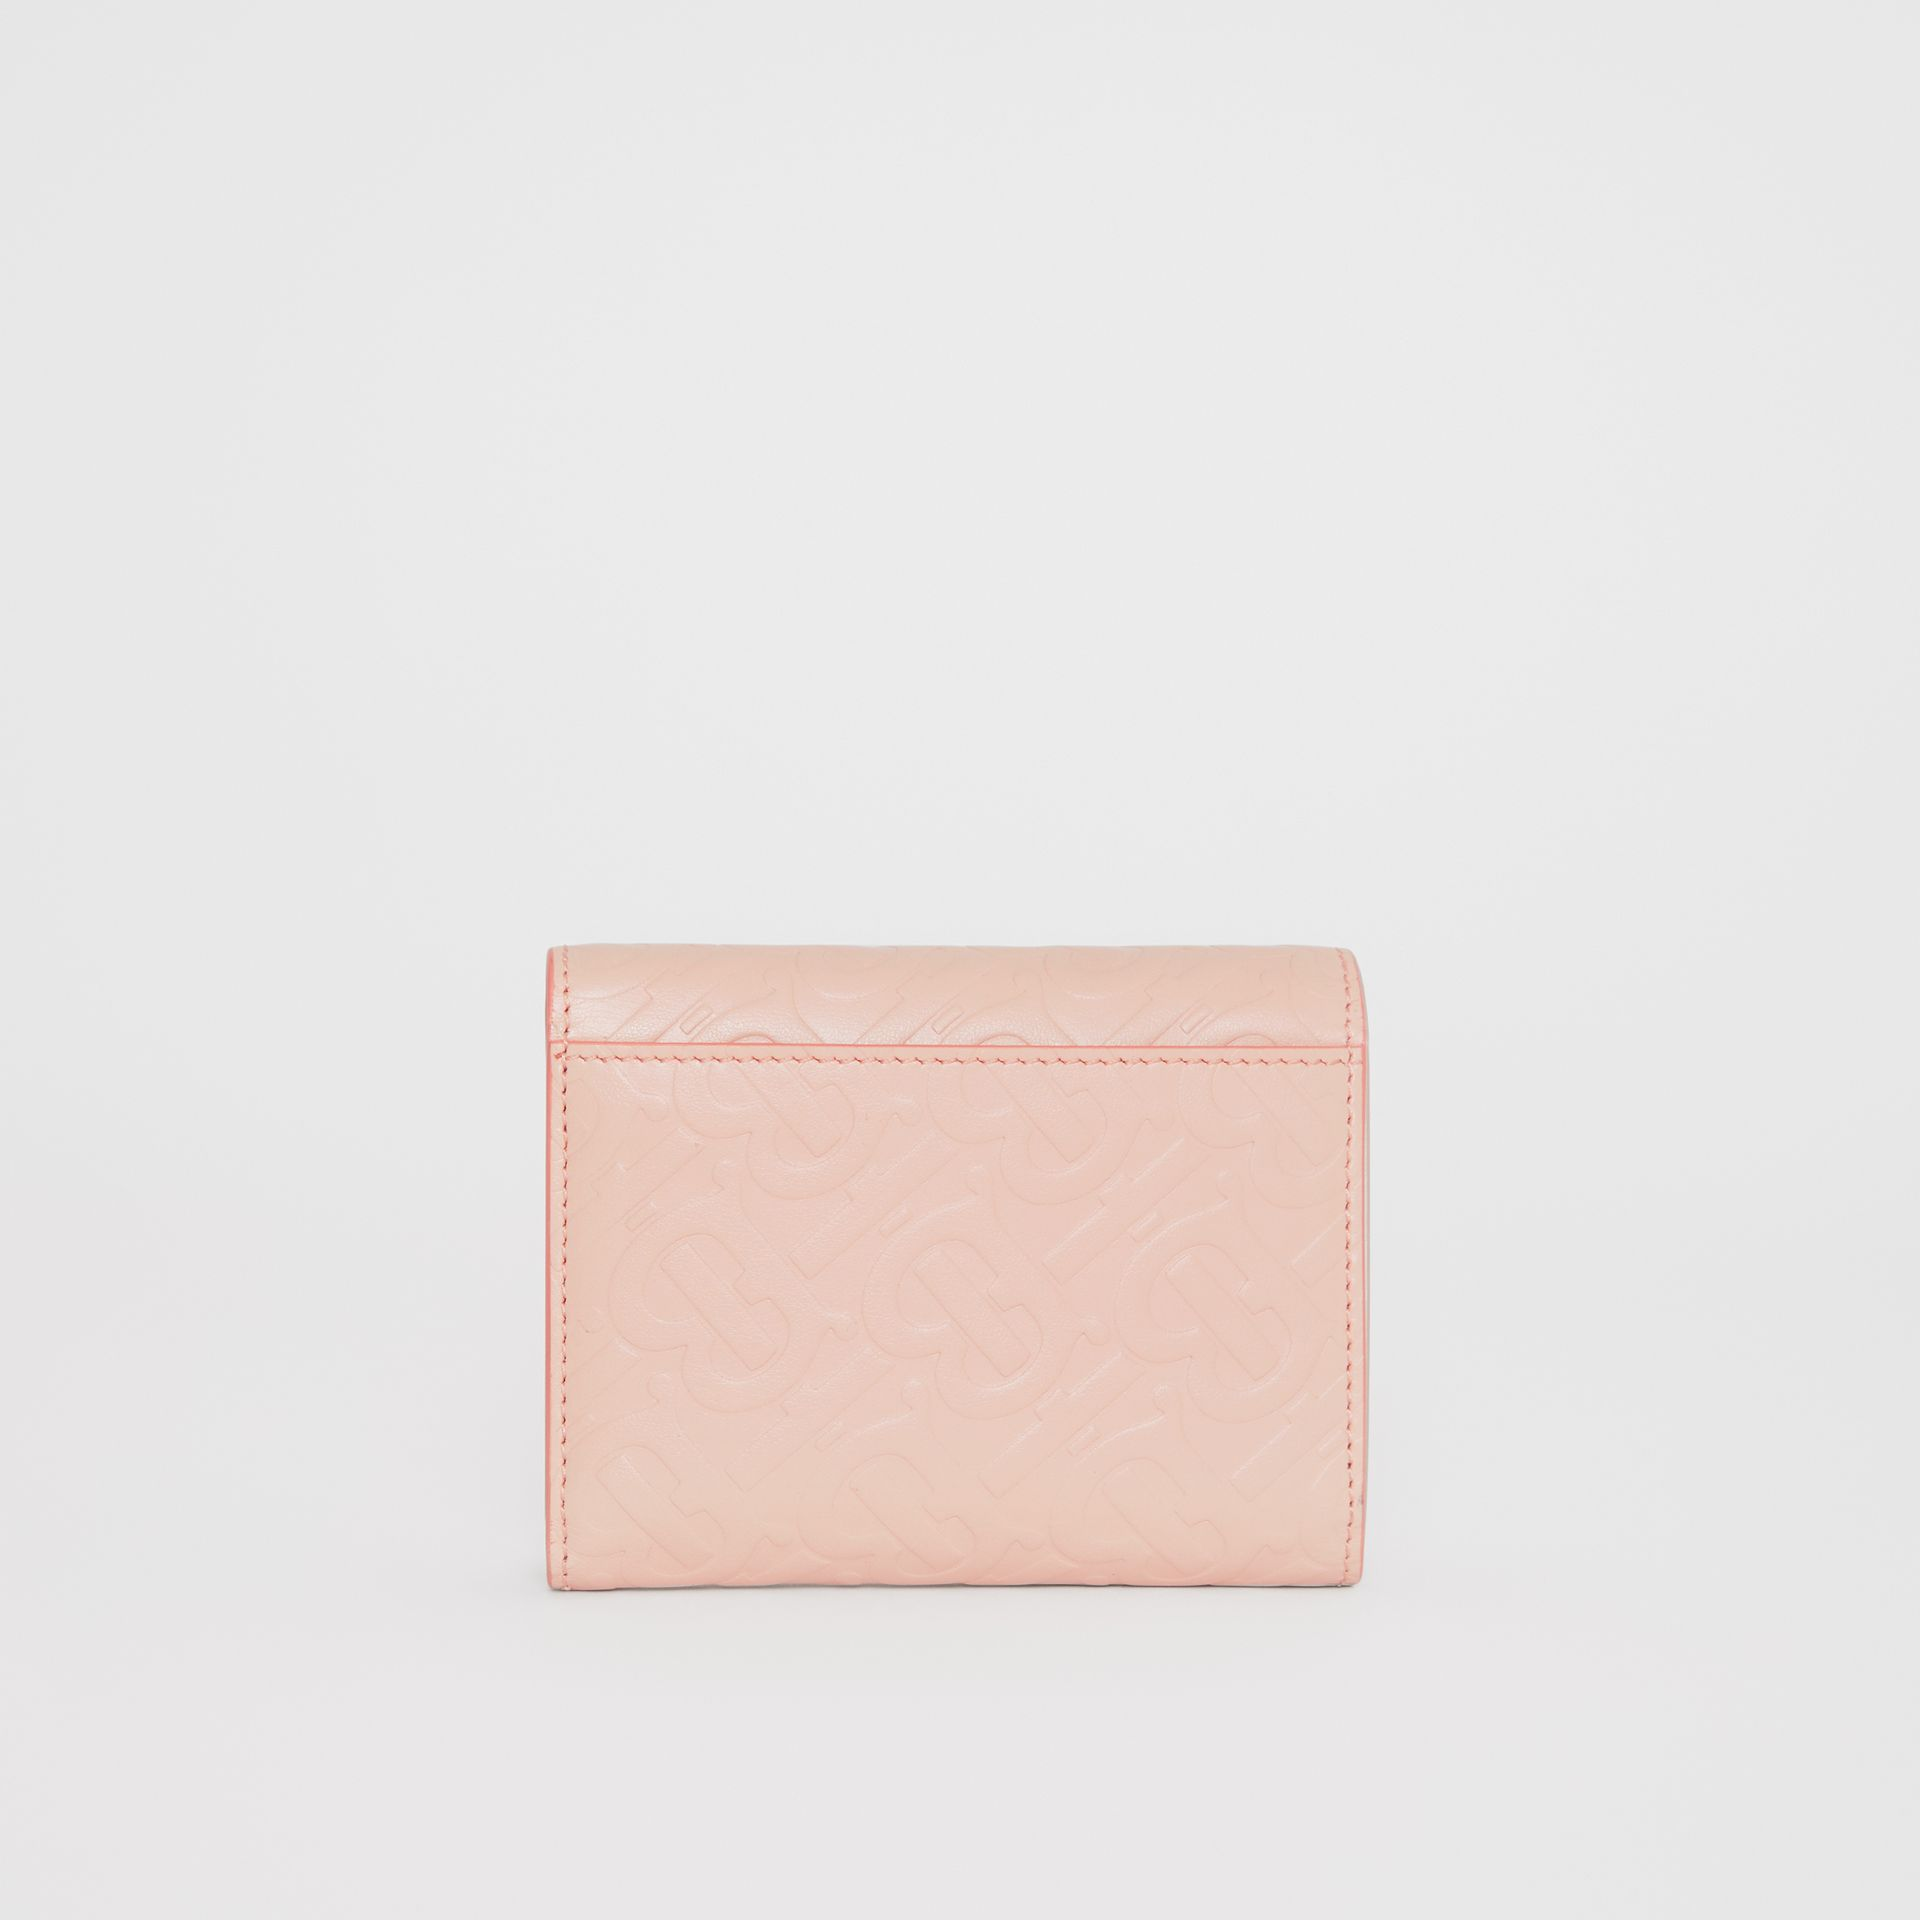 Small Monogram Leather Folding Wallet in Rose Beige | Burberry - gallery image 4